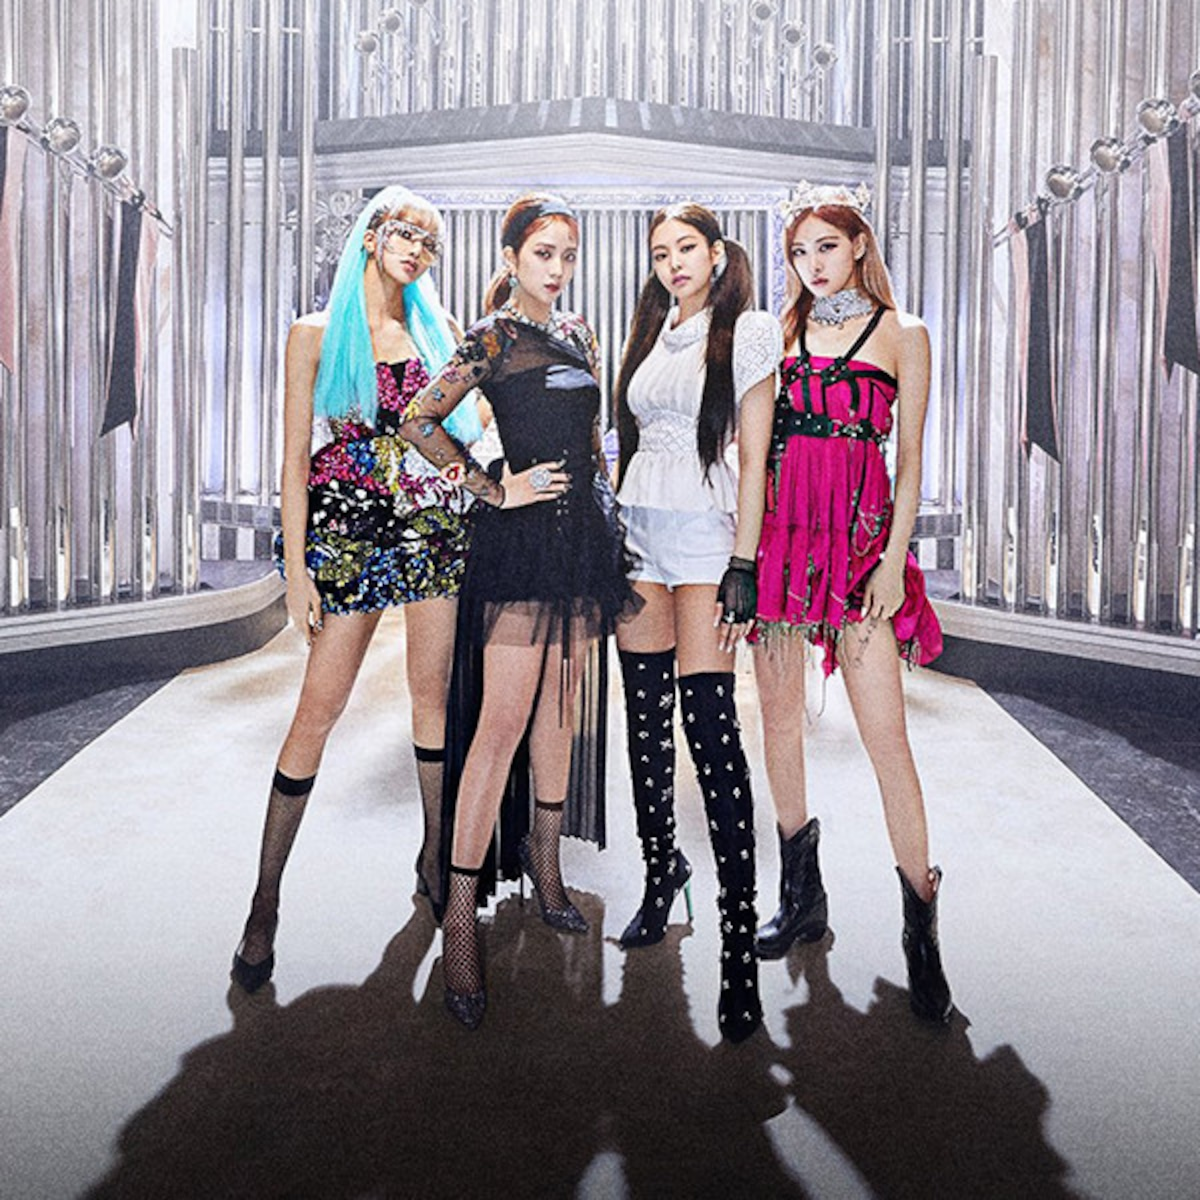 10 Things We Re Buying To Look Like Blackpink In Kill This Love